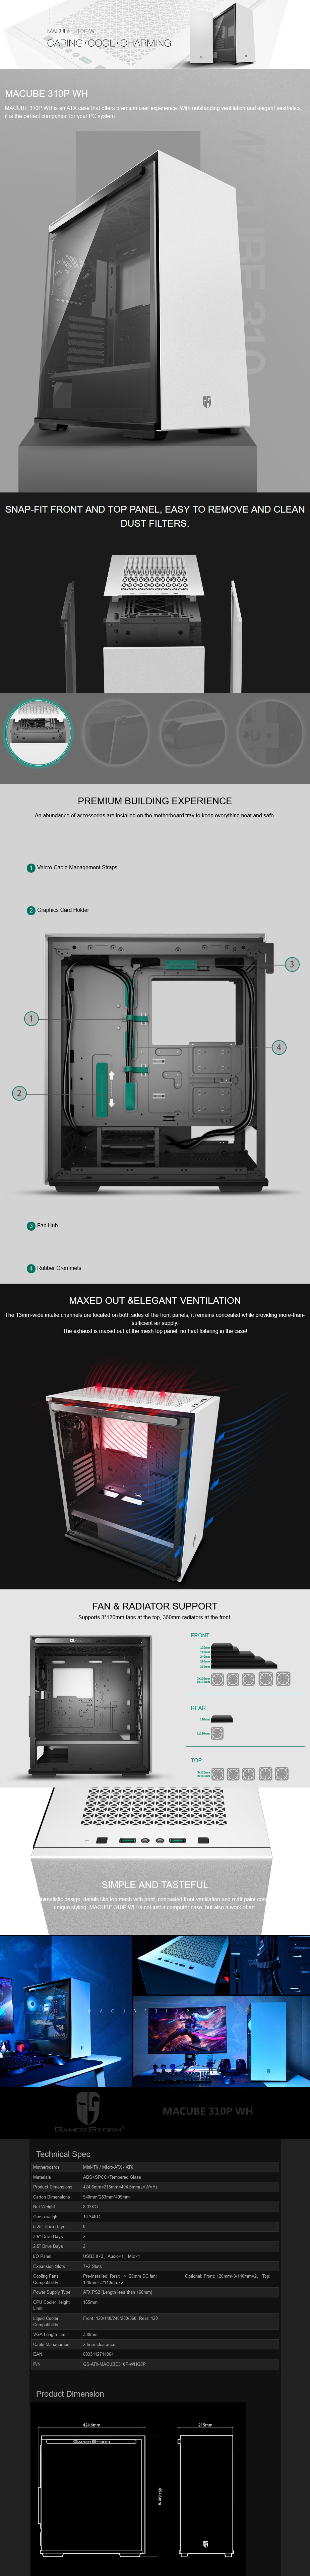 Deepcool Gamer Storm MACUBE 310P Tempered Glass Mid-Tower ATX Case - White - Overview 1